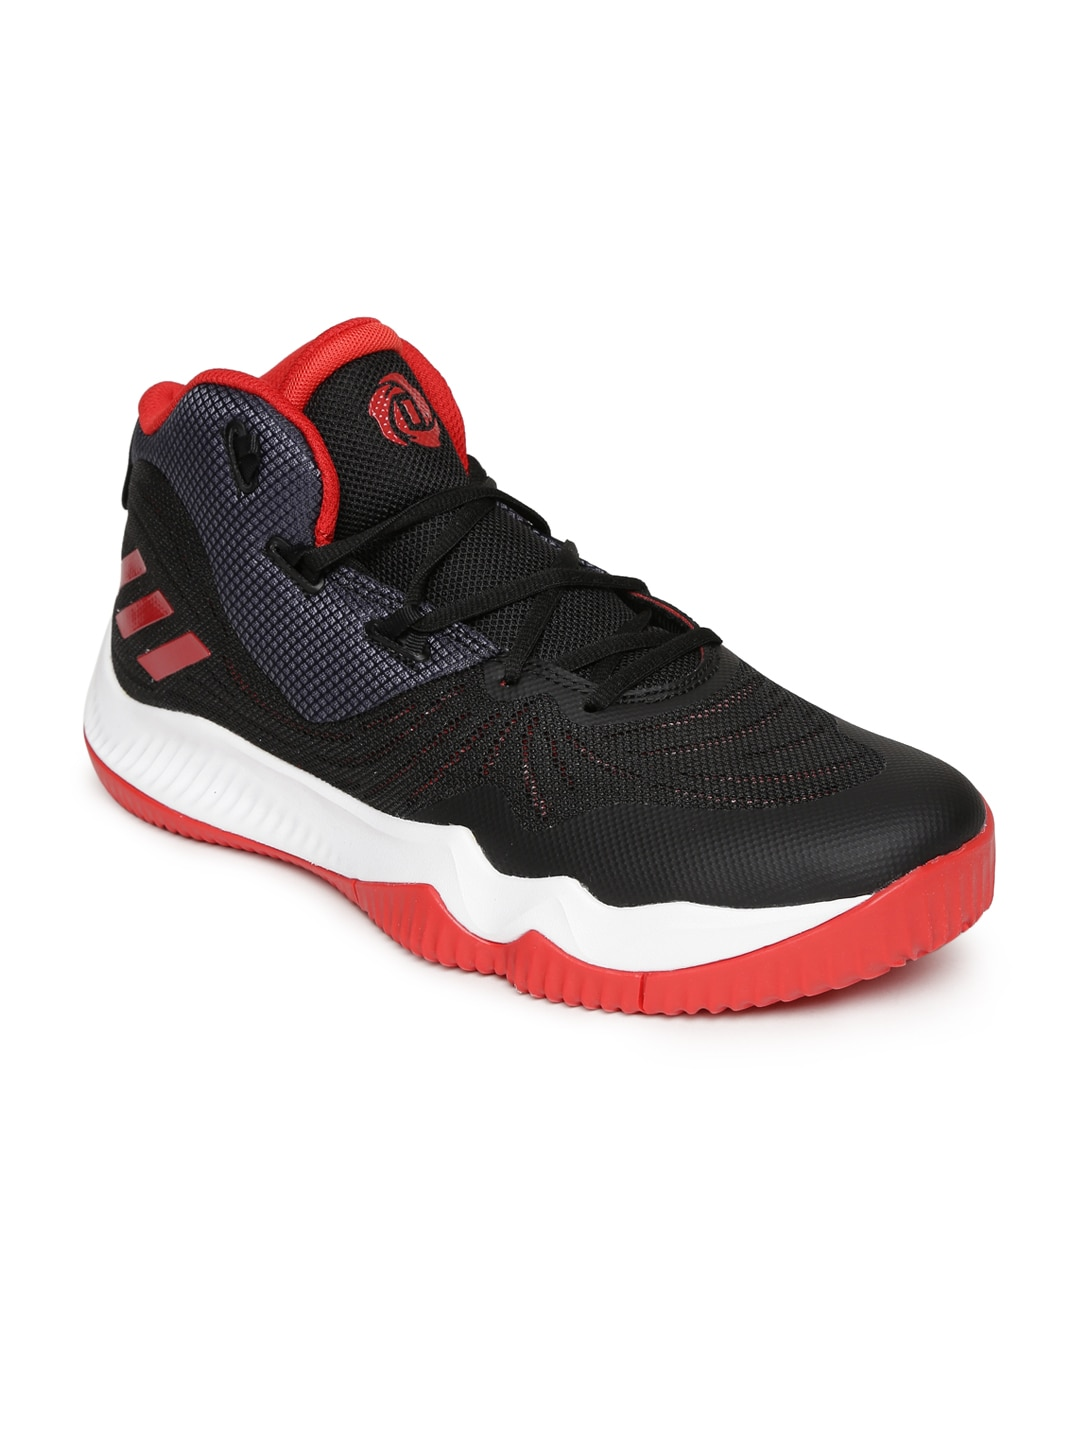 a24408cb505bc Basket Ball Shoes - Buy Basket Ball Shoes Online